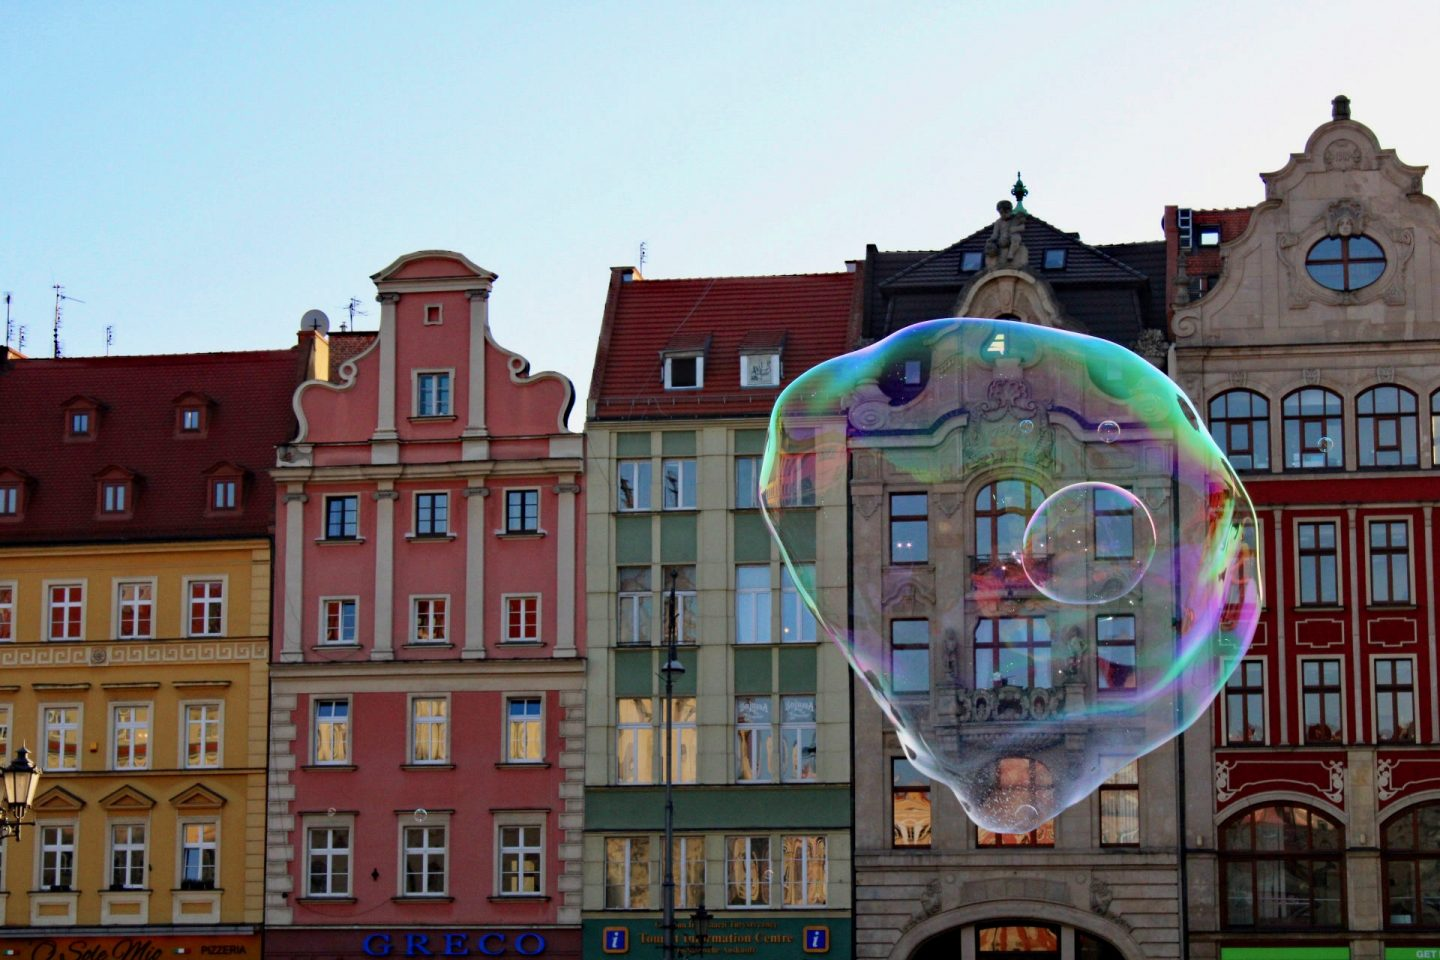 things to do in Wrocław: colourful facades of the market square, with a giant bubble floating in front of them